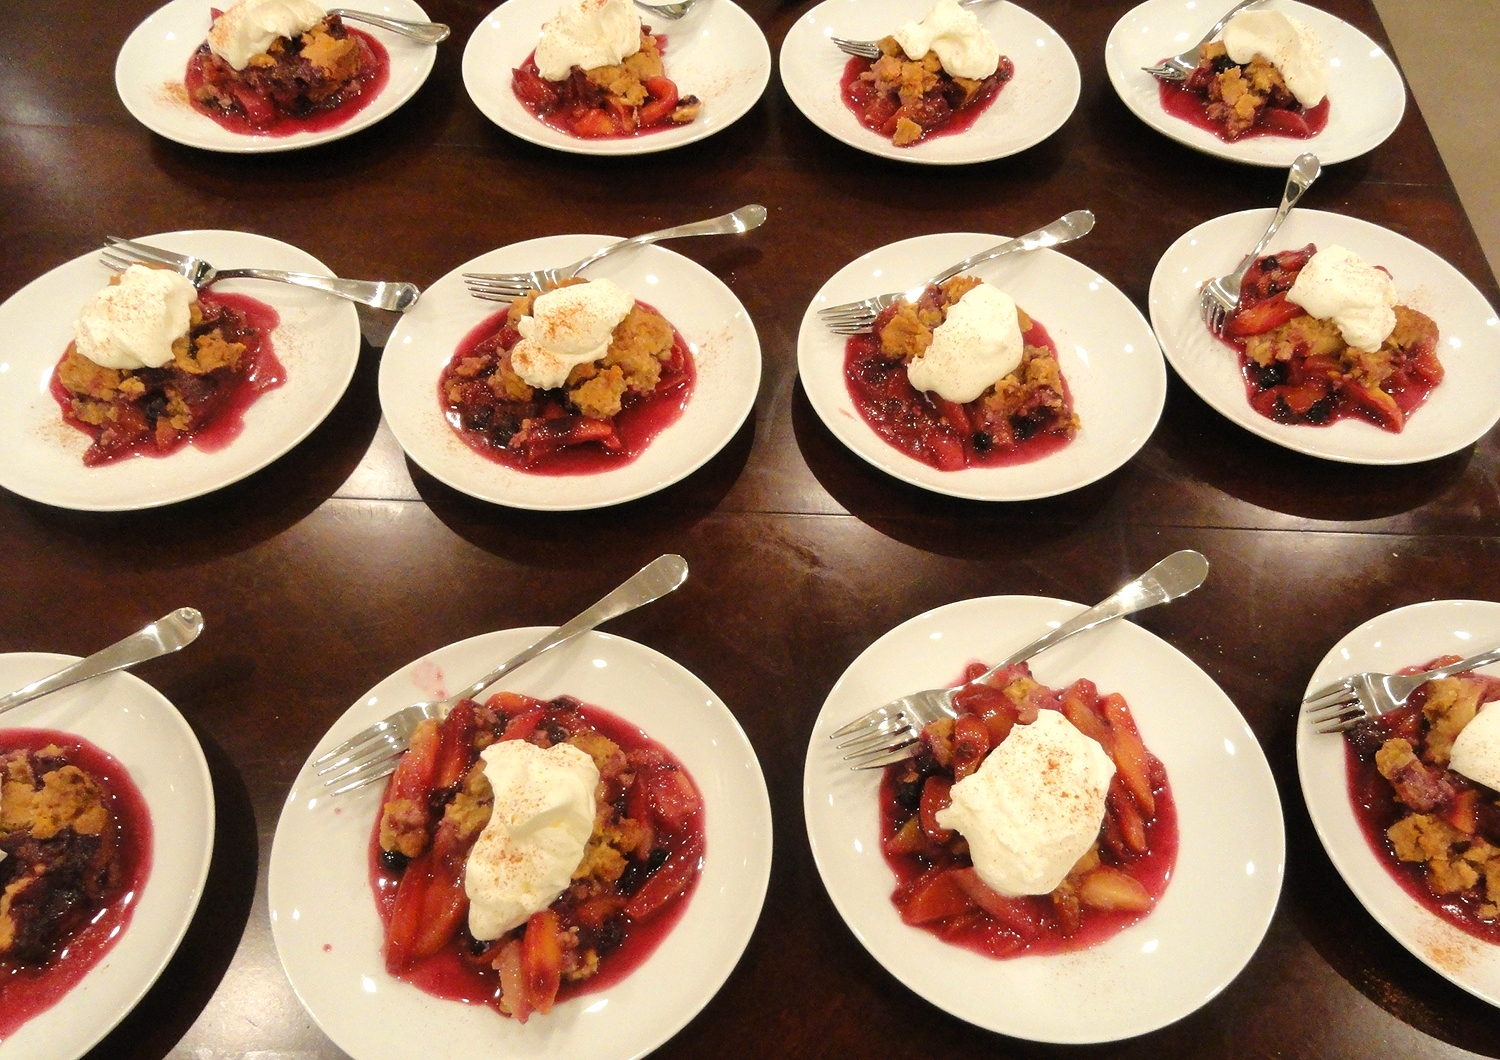 Warm summer stone fruit crisp with whipped cream